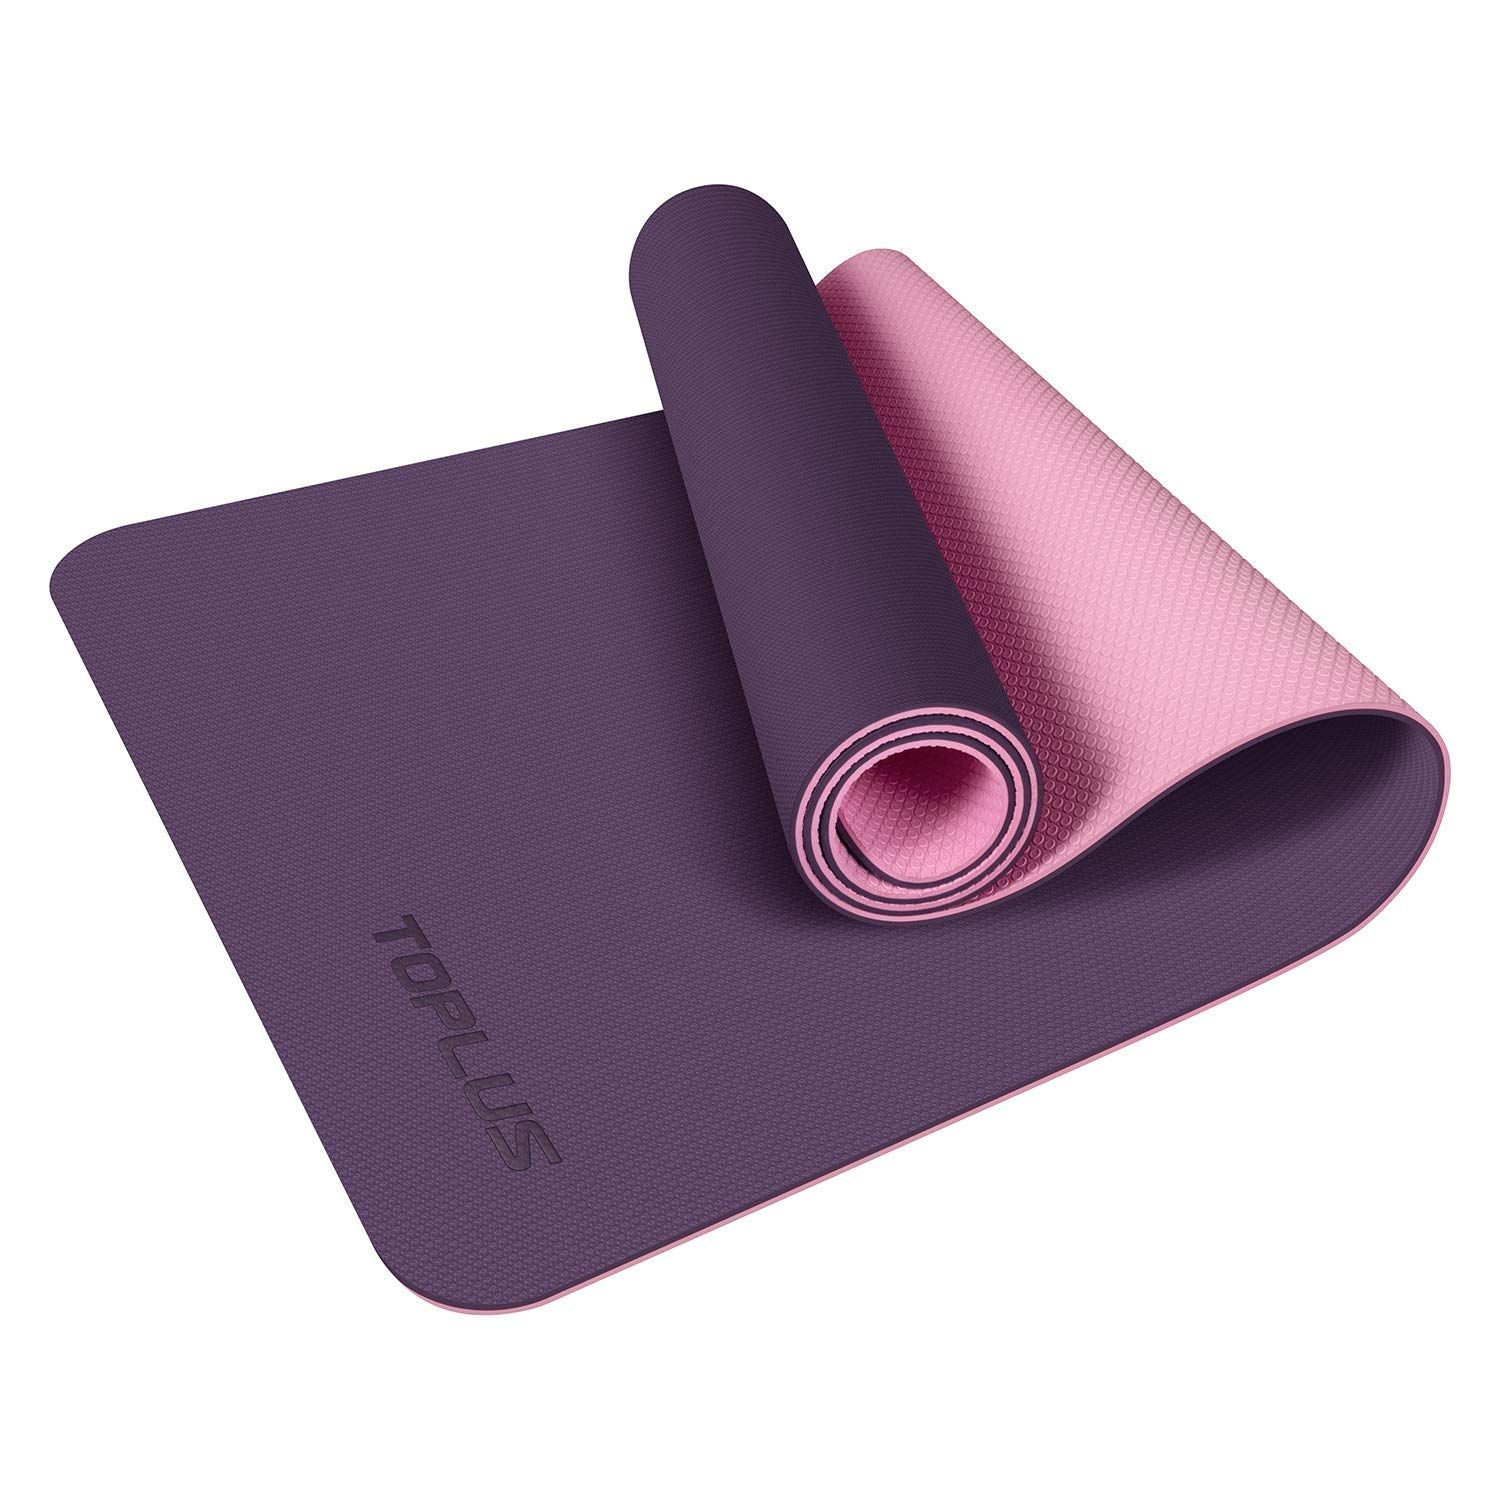 Toplus Yoga Mat Upgraded Yoga Mat Eco Friendly Non Slip Exercise And Fitness Mat With Carrying Strap Click Image For Mat Exercises Yoga Mat Floor Workouts